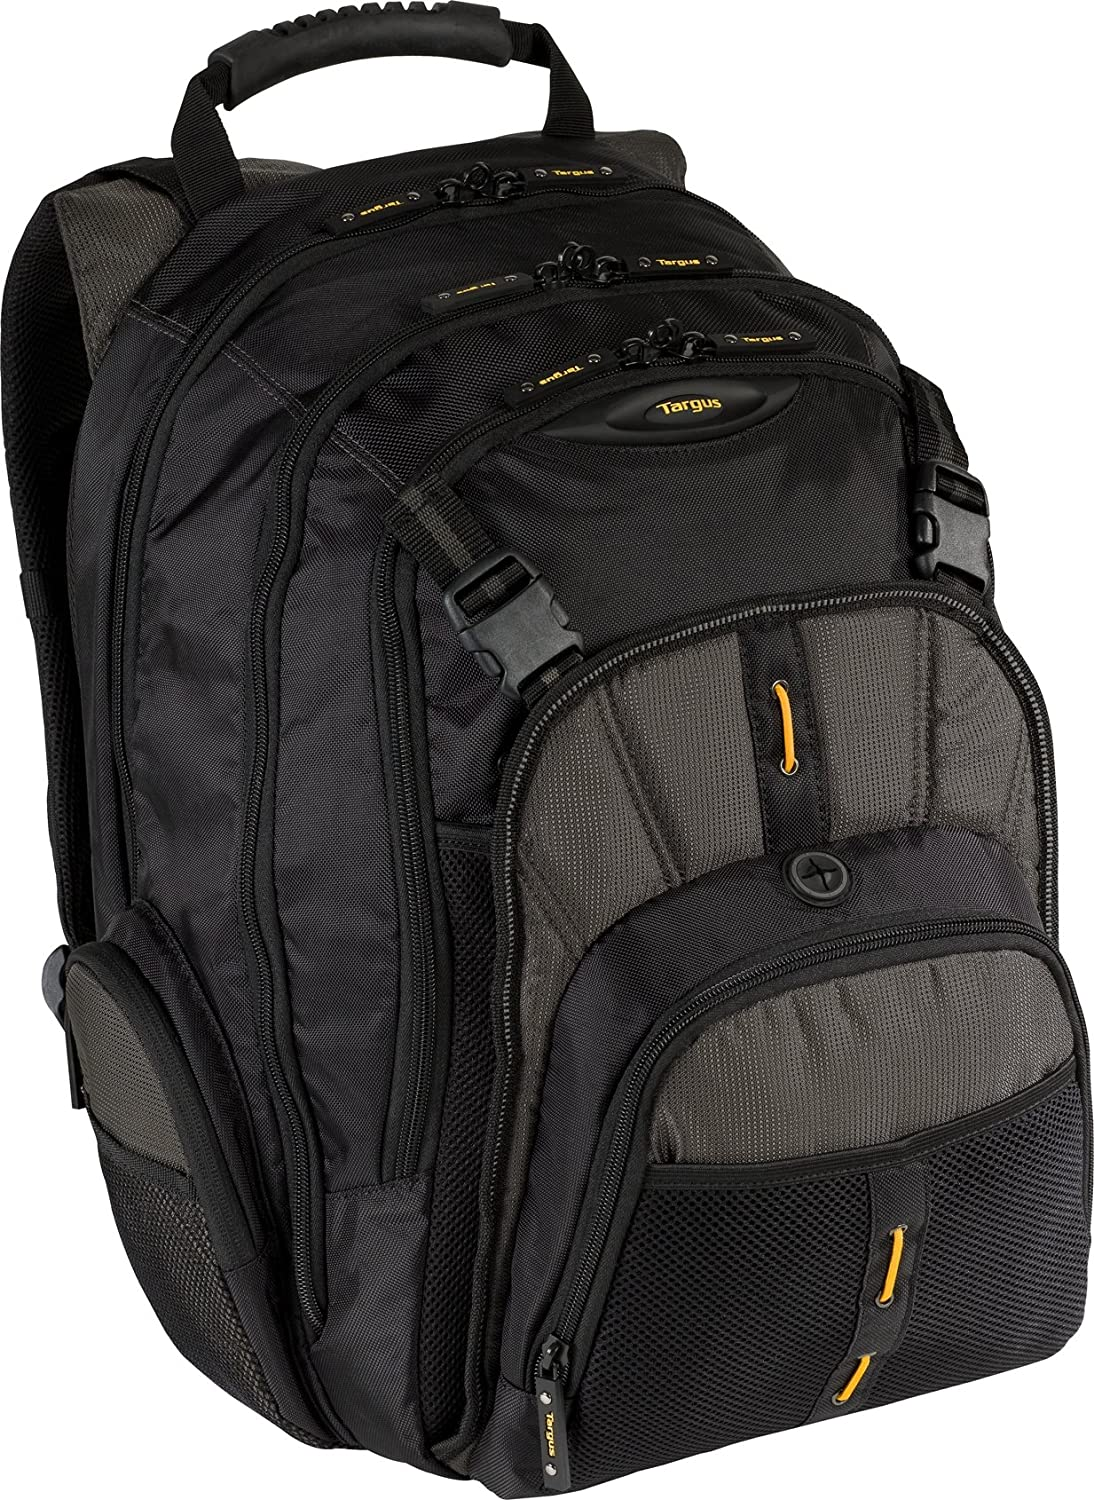 Targus CityGear Commuter Backpack for 16-Inch Laptops, Black/Yellow Accents (TBB018US) targus awe55eu black